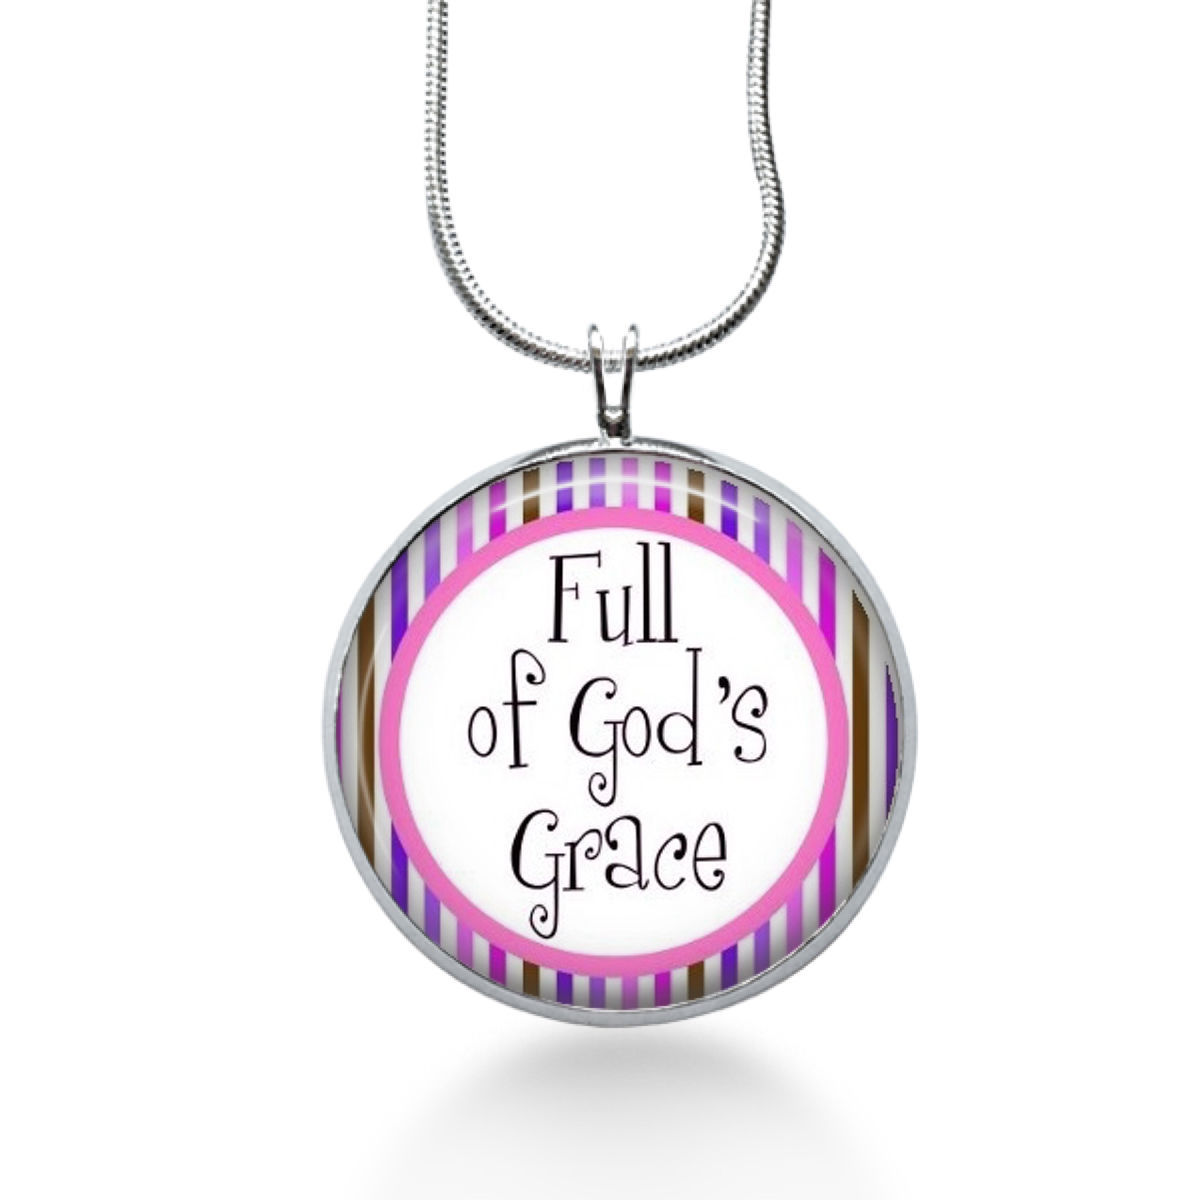 Primary image for Full of Gods Grace Necklace - Church Gift - Gifts for Her - Jewelry